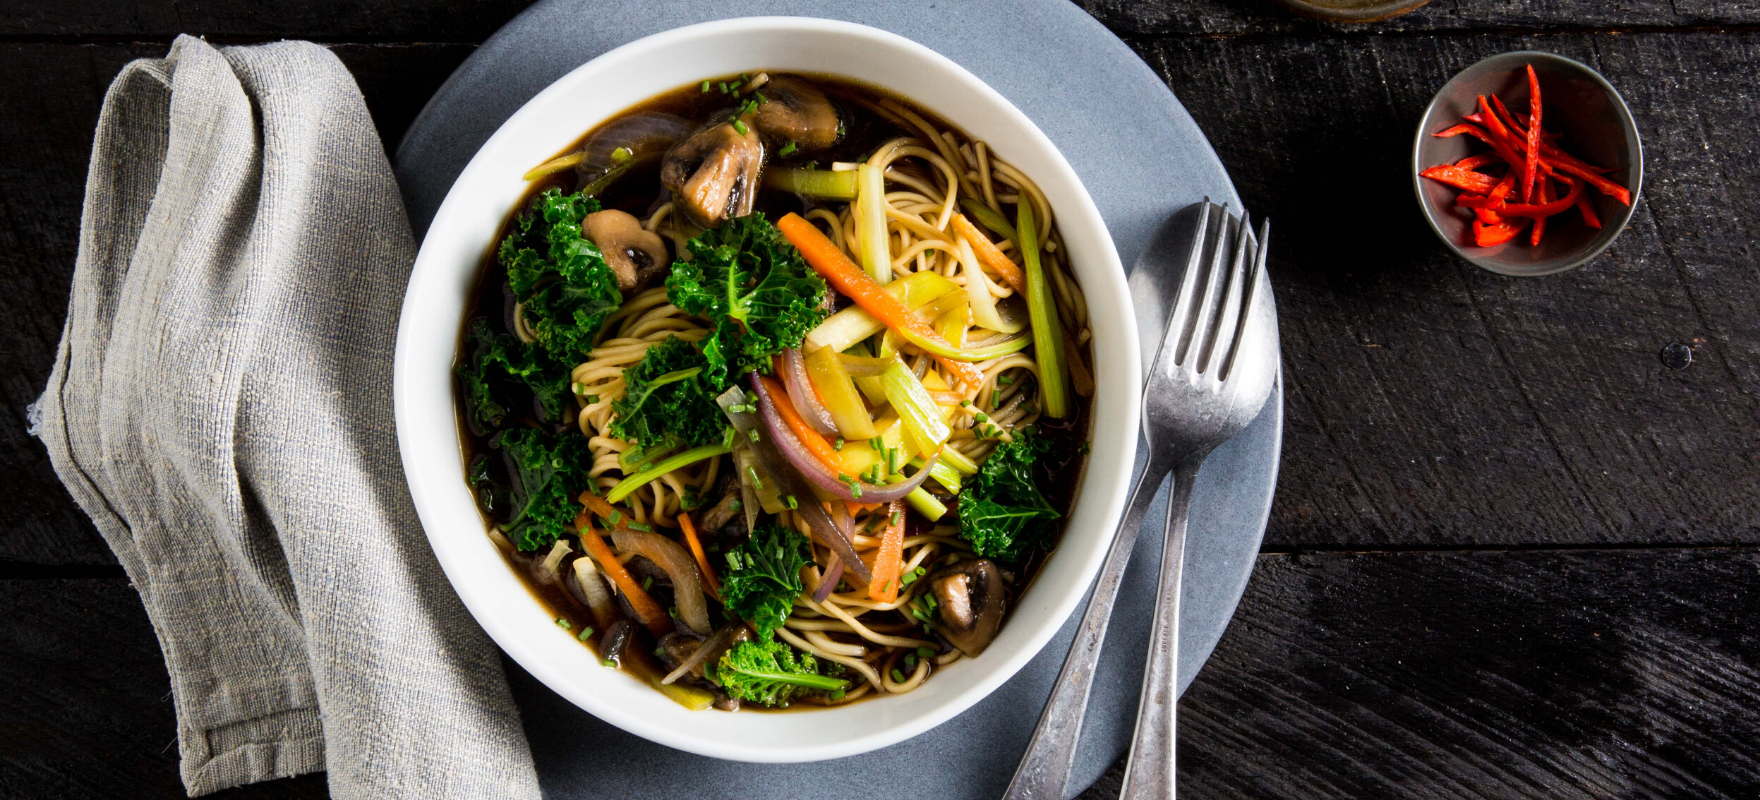 Veggie and noodle broth soup image 1